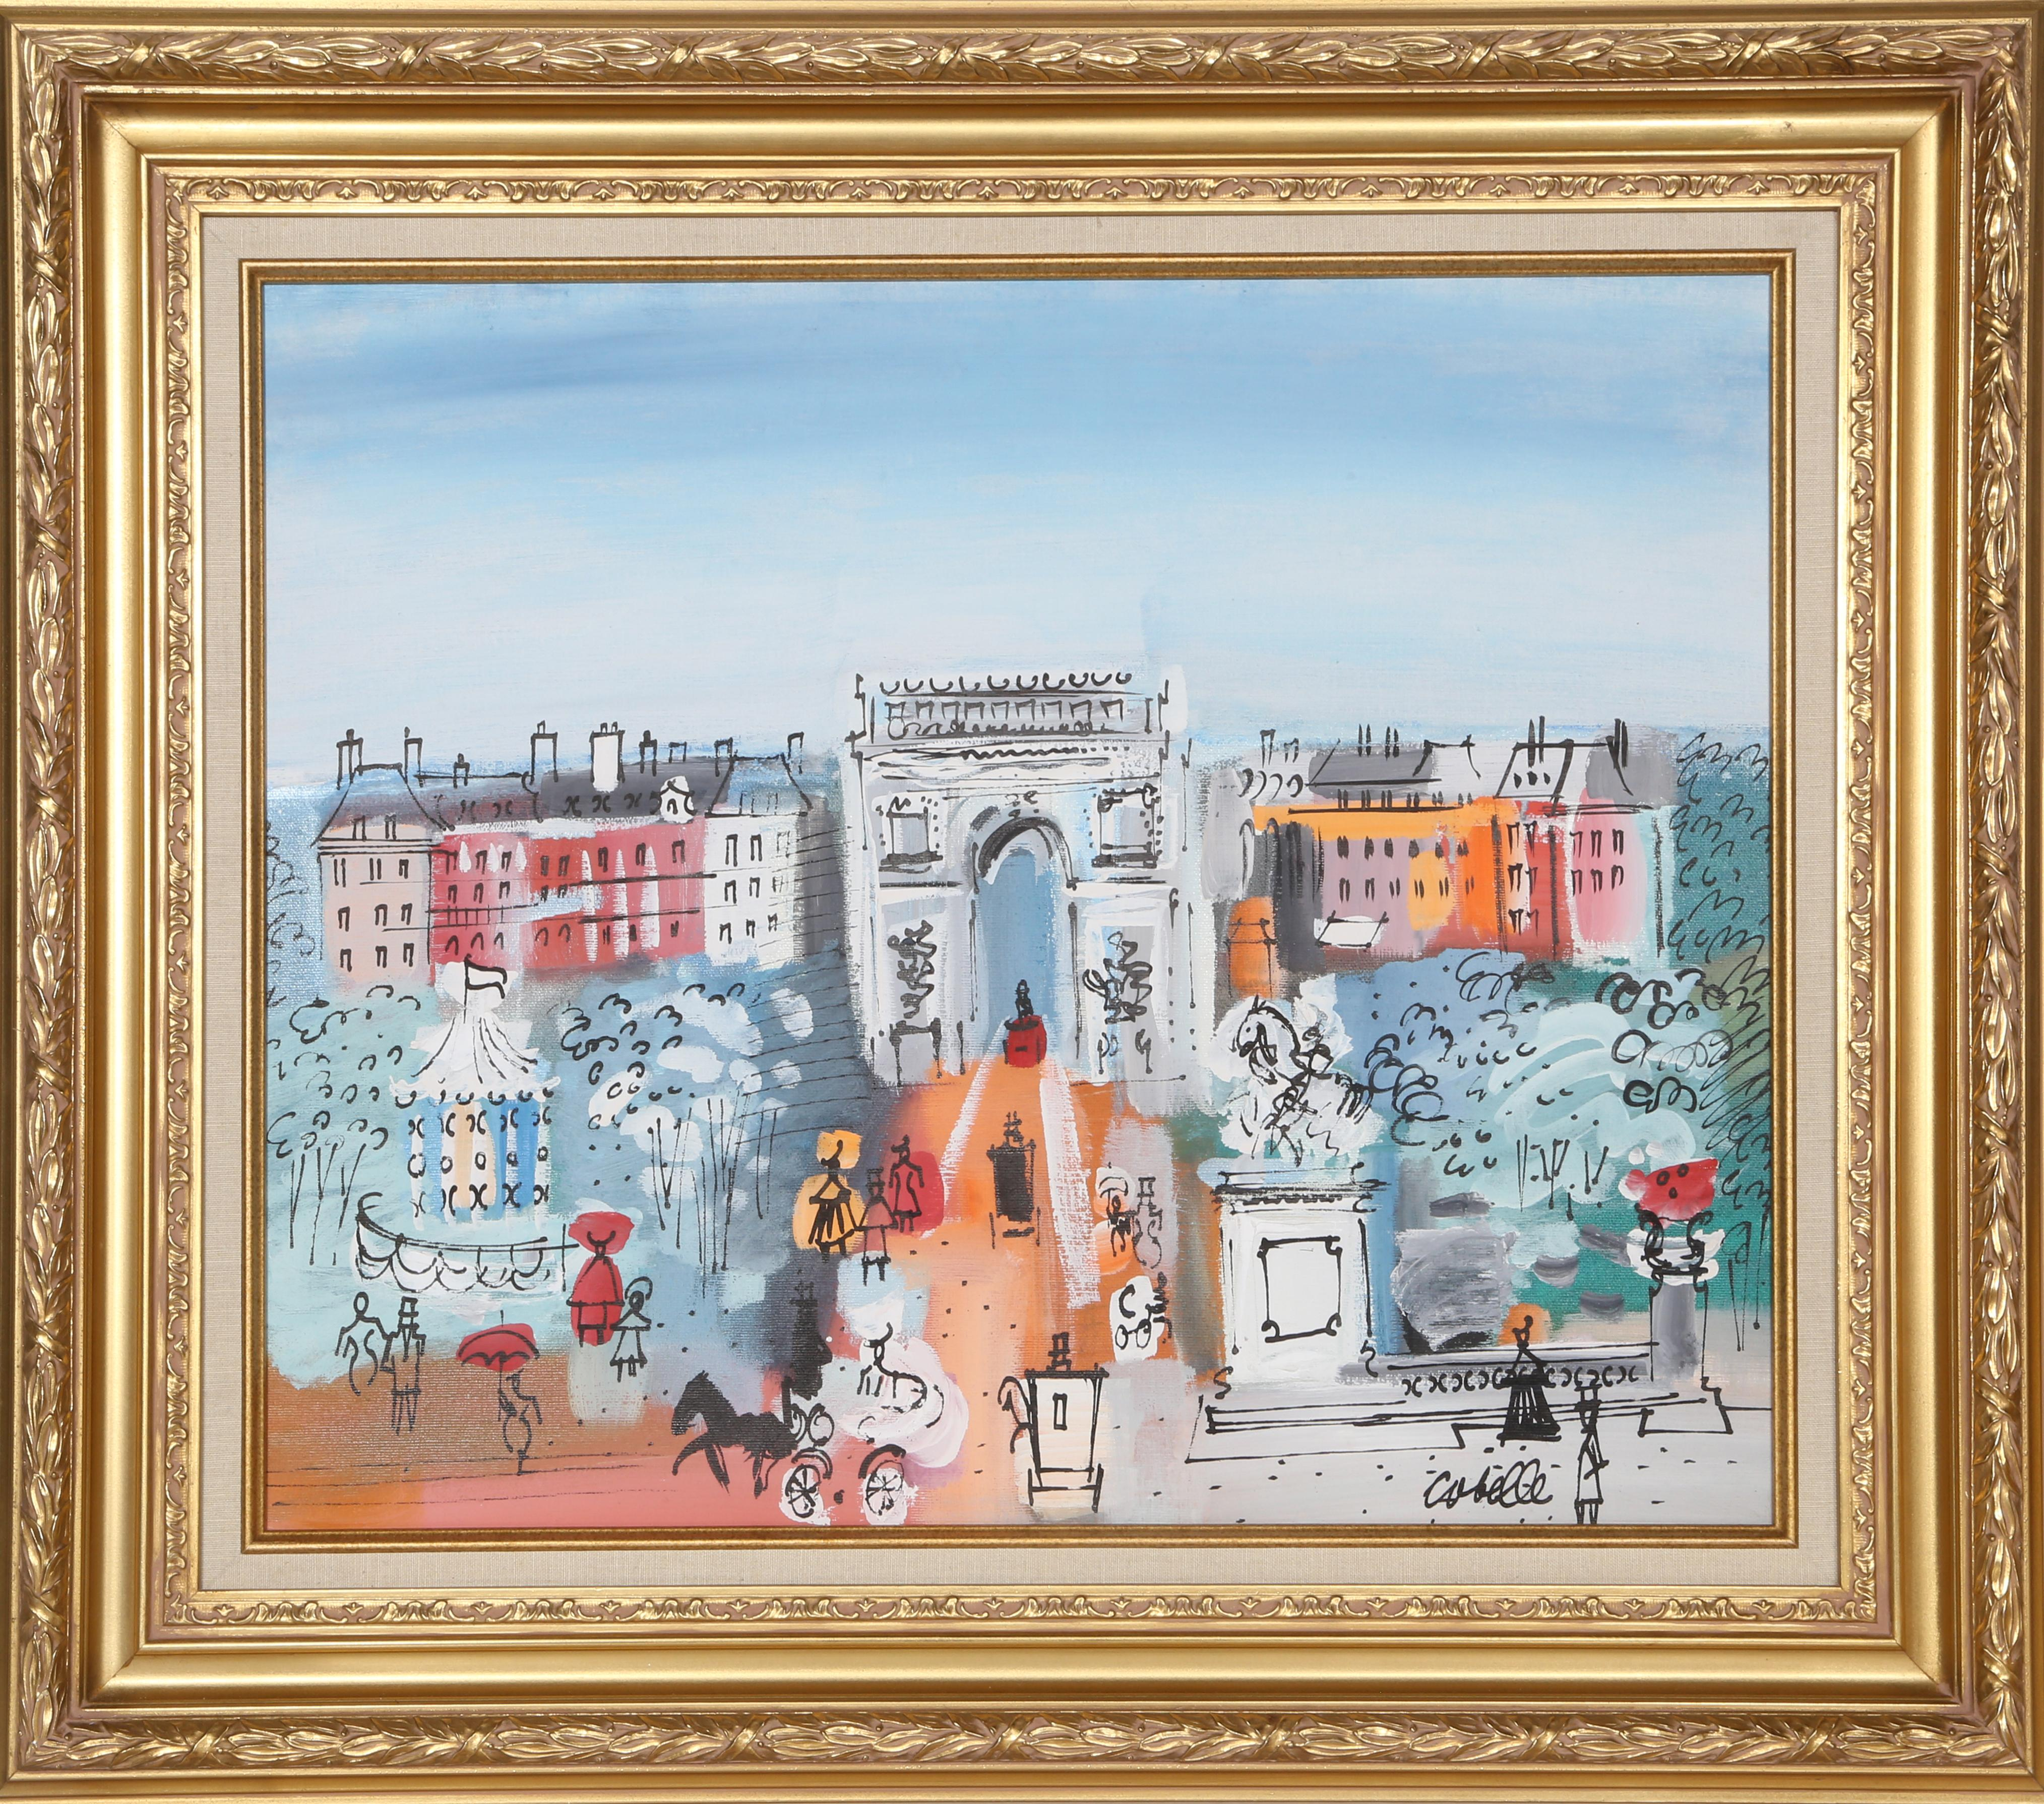 Grand Boulevard, Painting by Charles Cobelle 1961